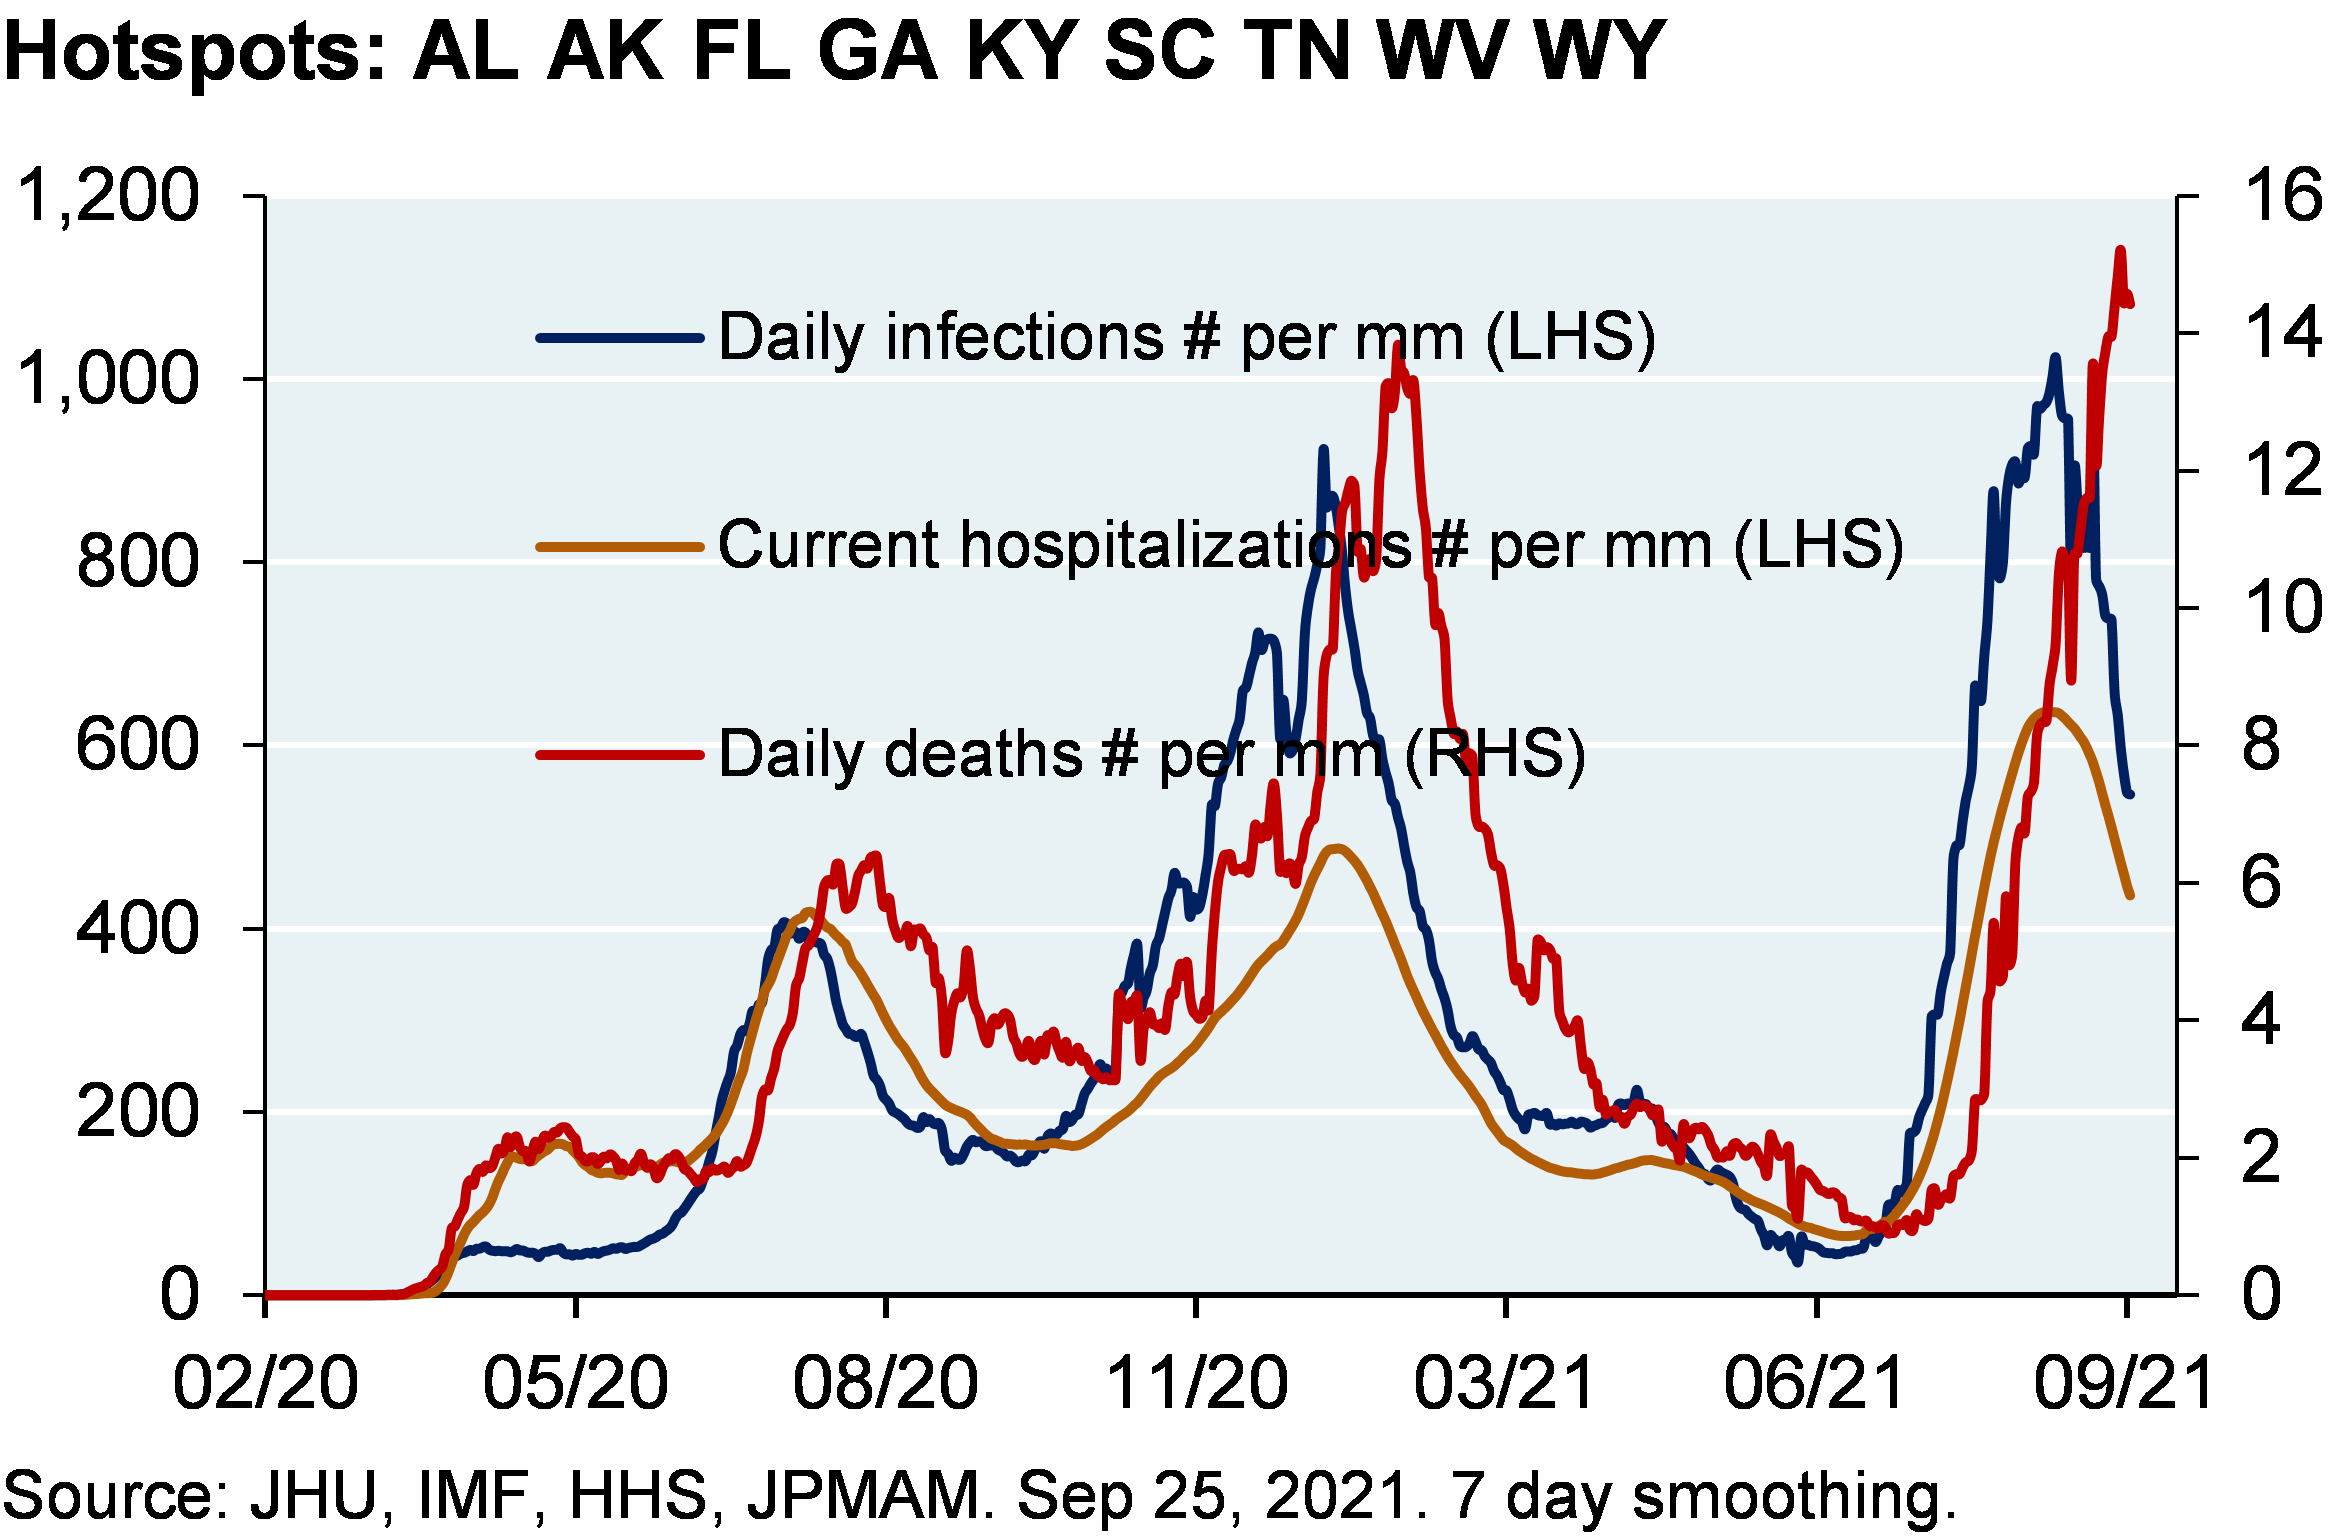 Line chart shows daily infections per million, current hospitalizations and daily deaths per million for US COVID hotspot states.  Daily infections and hospitalizations have begun to roll over from the latest surge, while mortality is still rising.